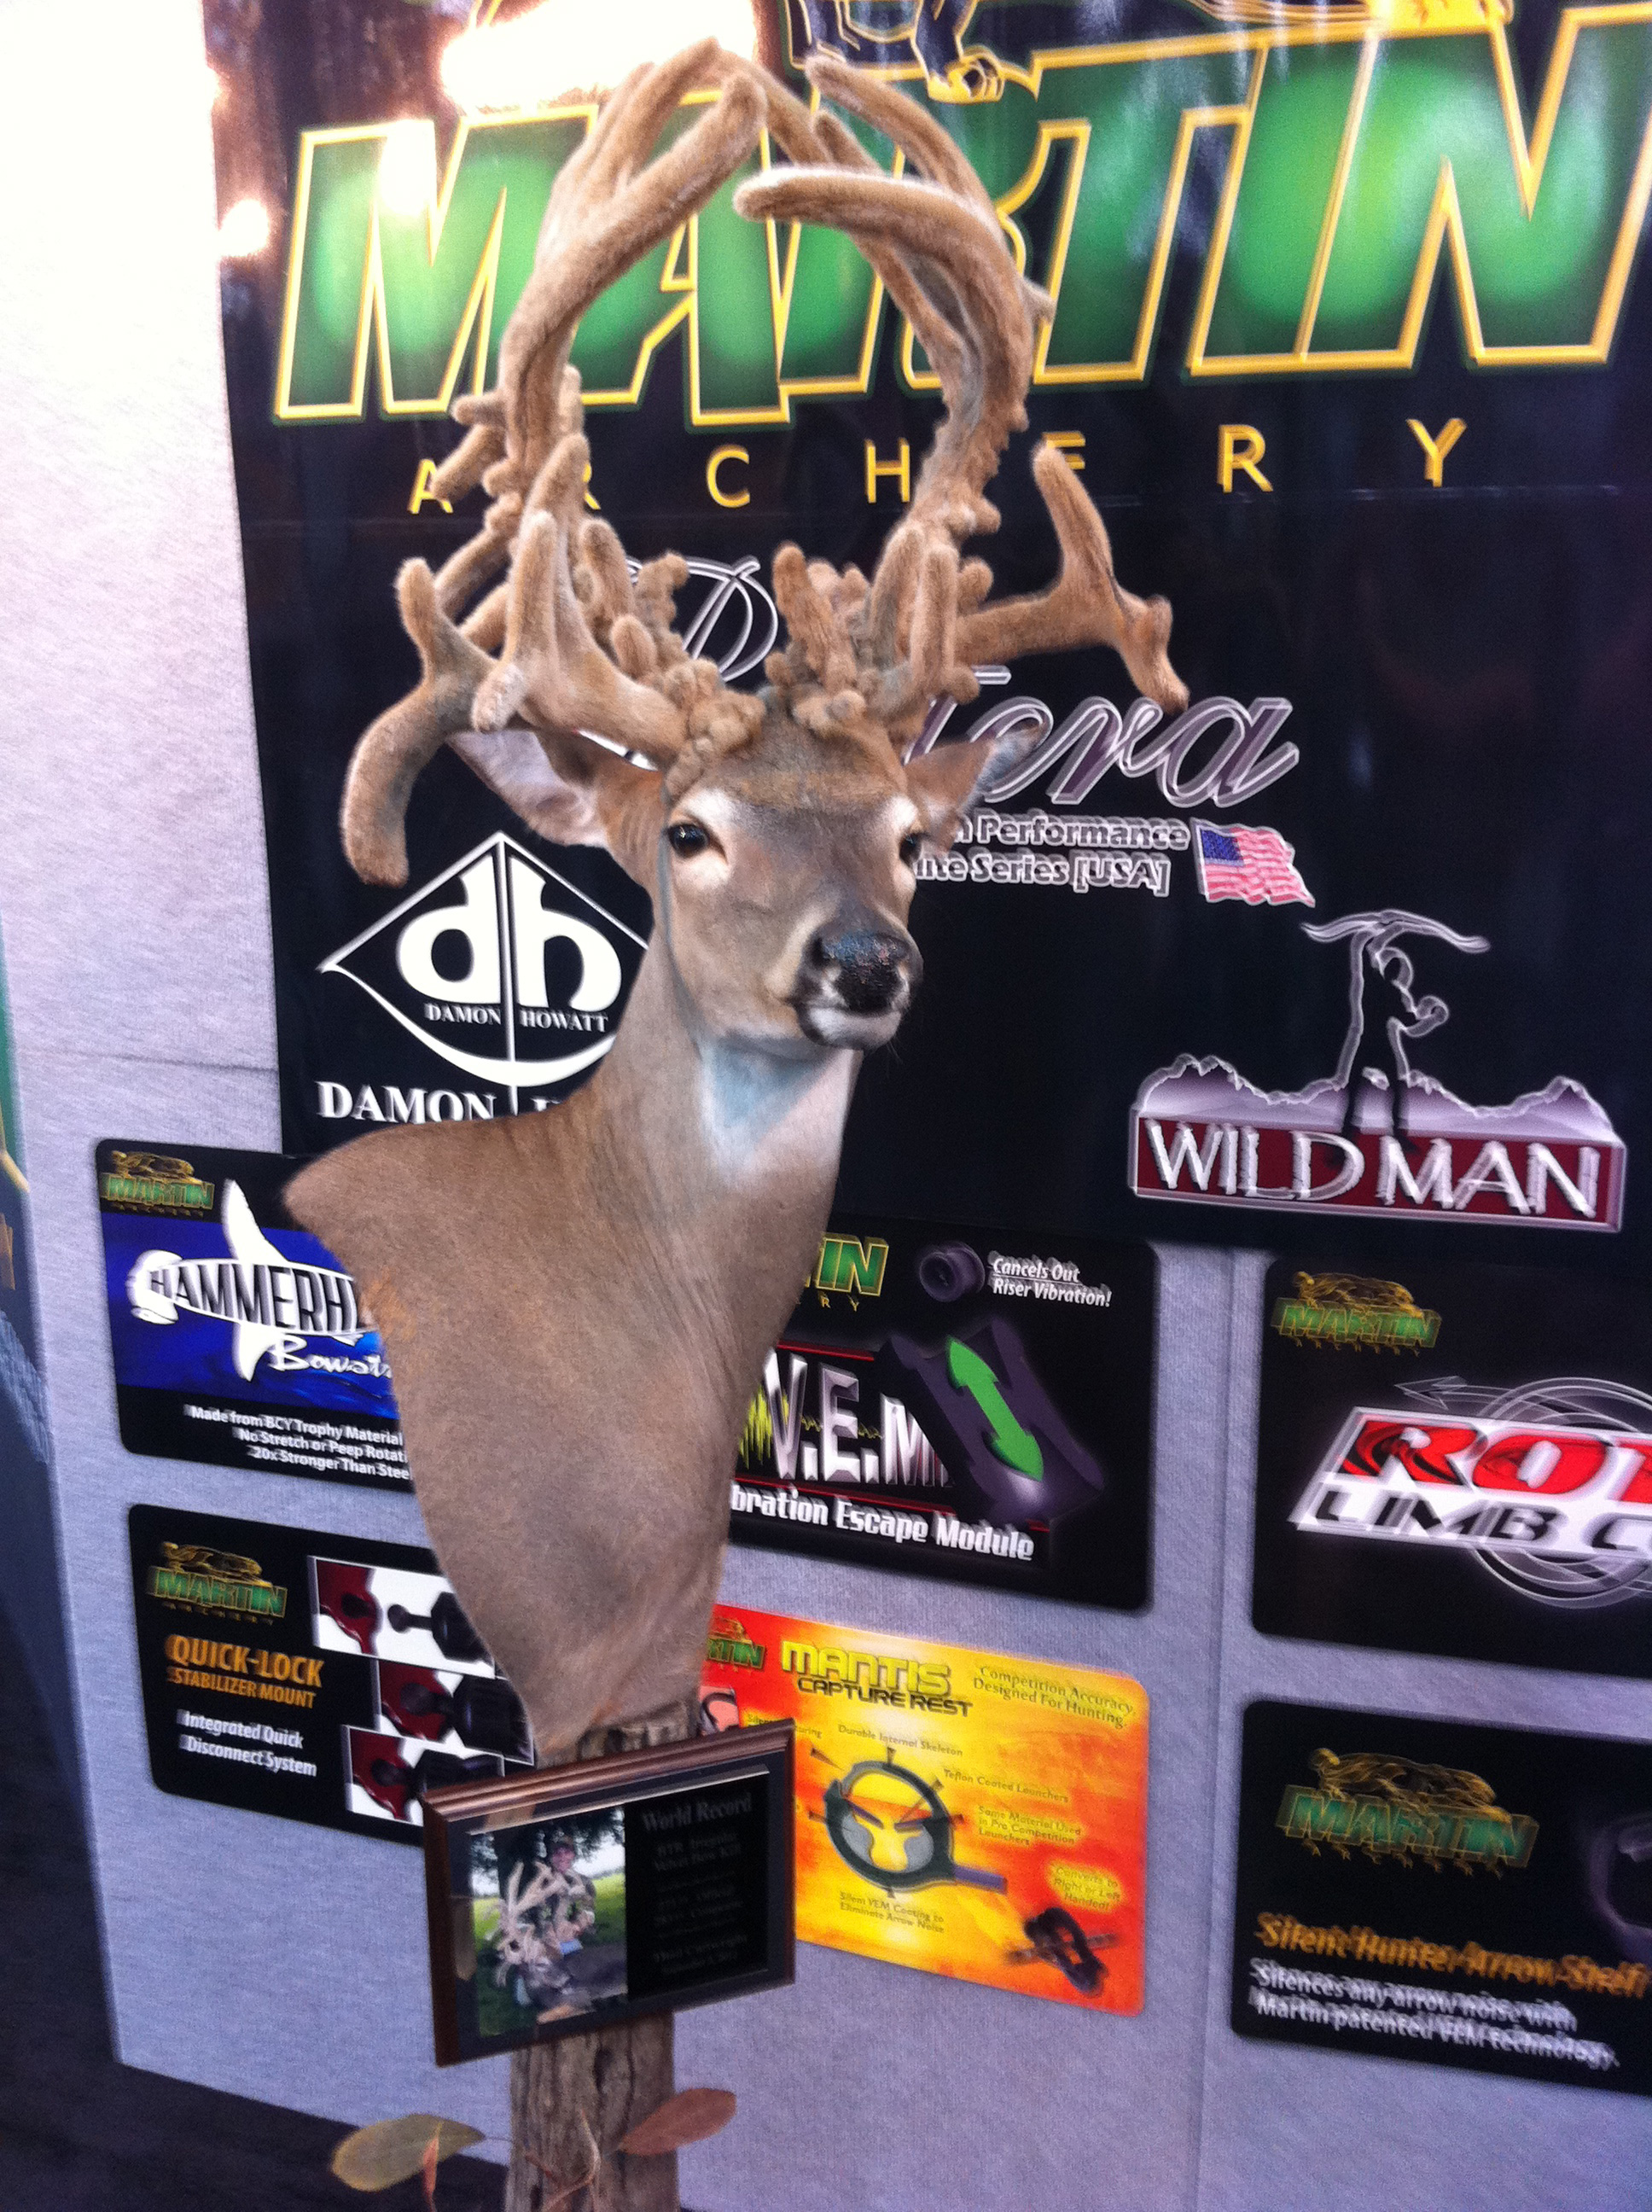 Hunting World record BTR irregular bow velvet bow kill by Thad Cartwright in September, 2012. Scored 273 2/8! On display at the Martin Archery booth.